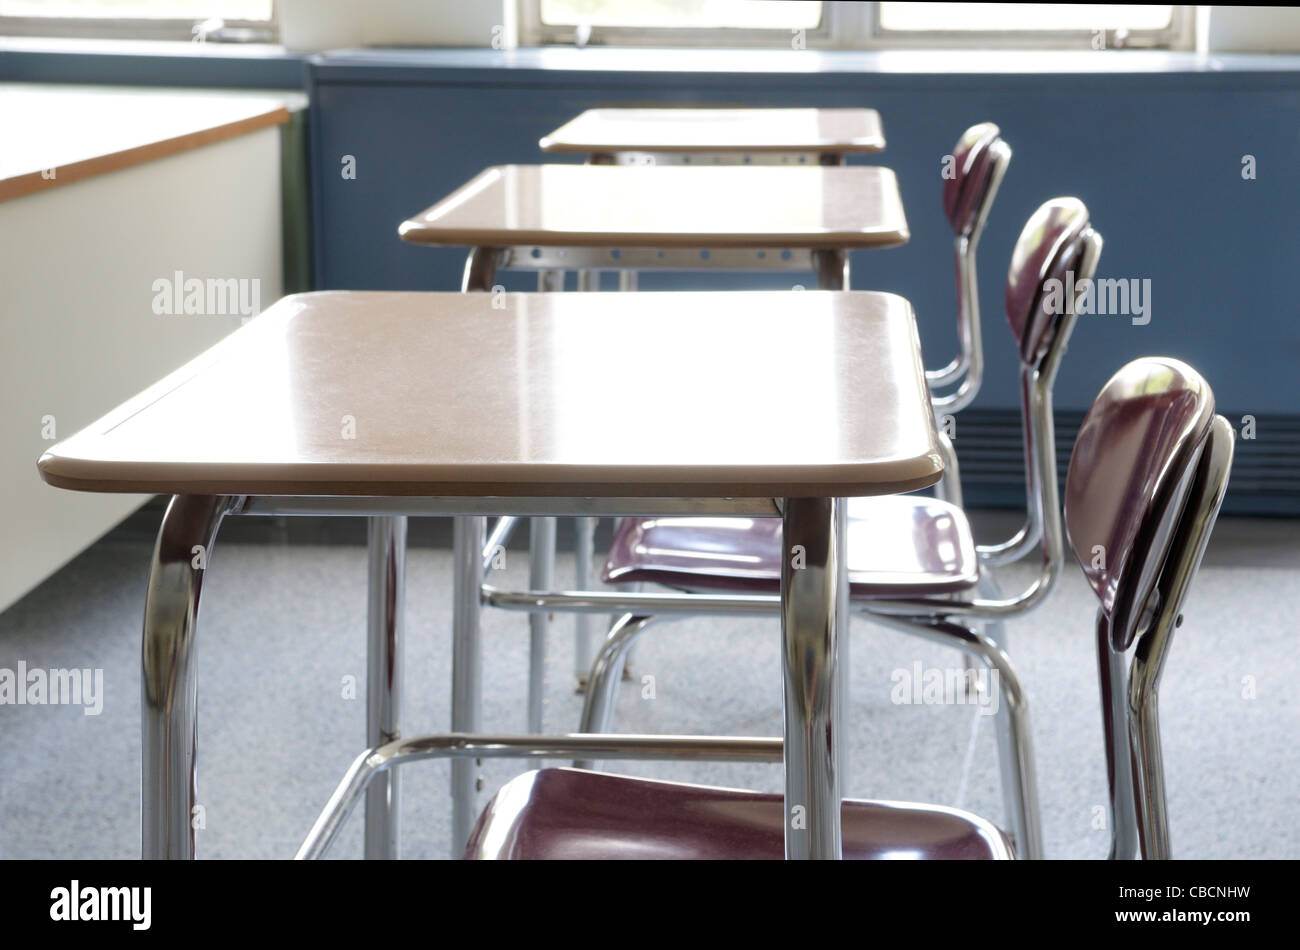 Rows Of Desks Stock Photos & Rows Of Desks Stock Images - Alamy